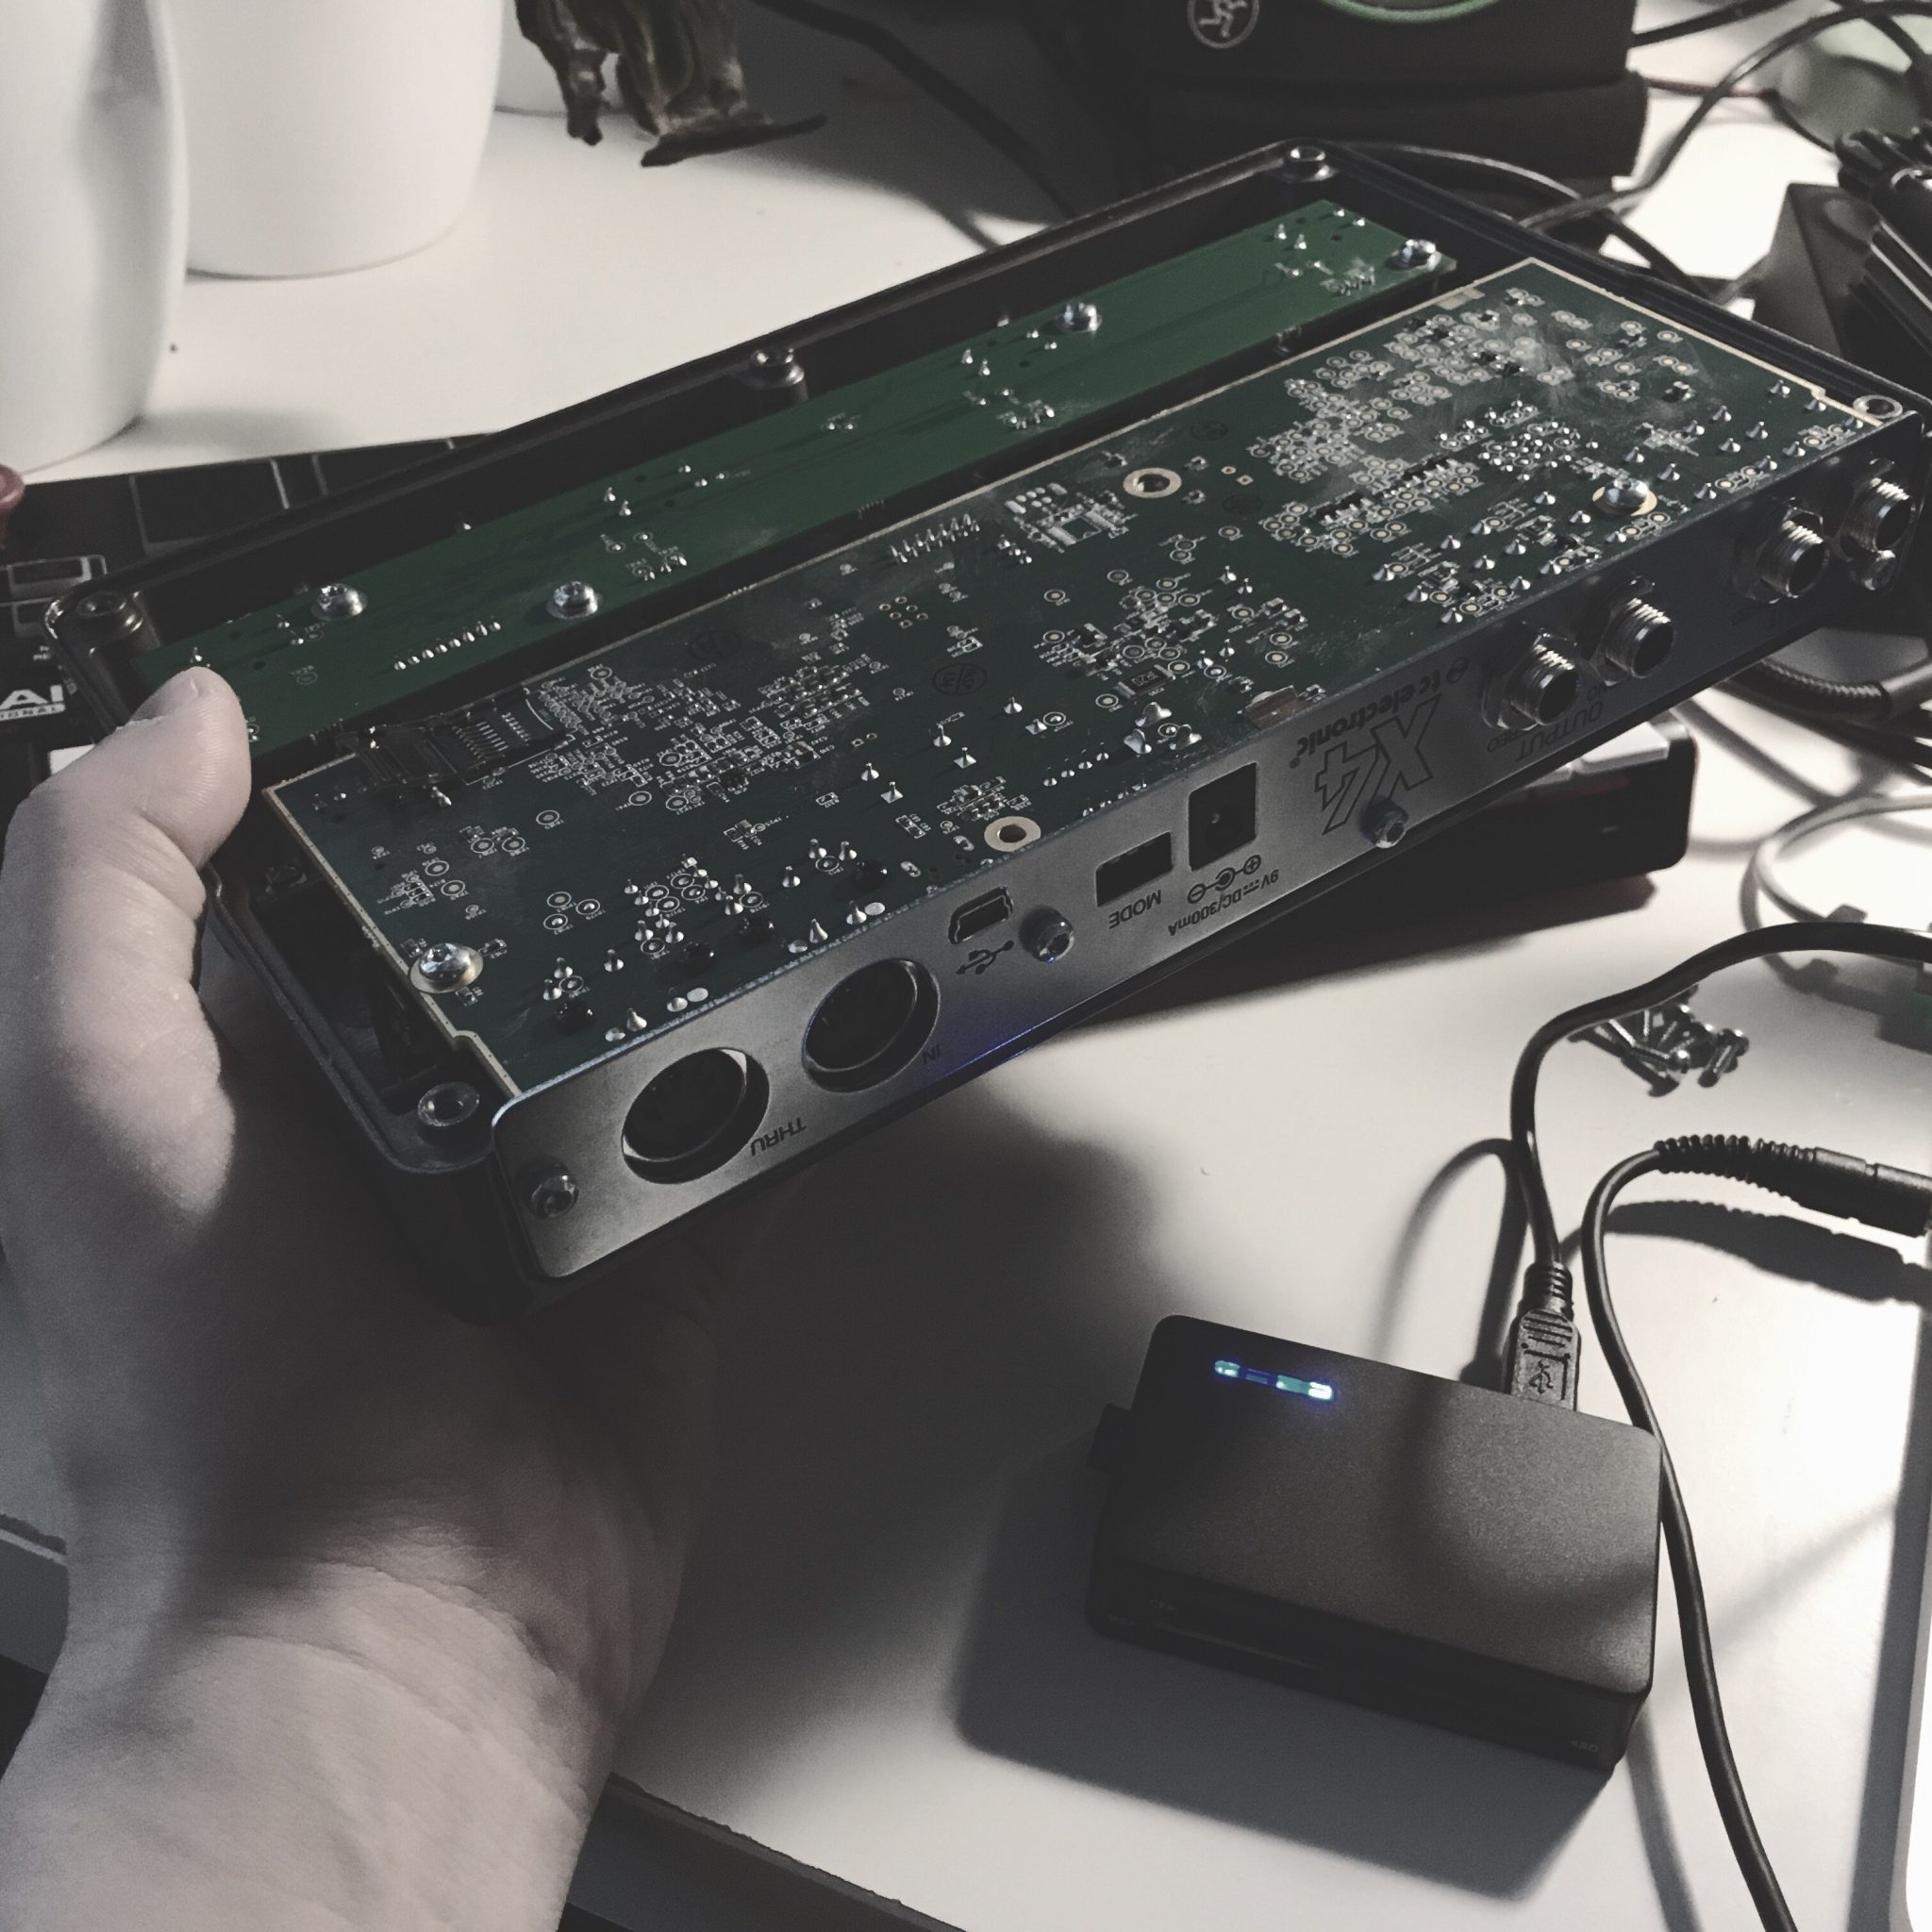 Don't be a DIY musician like me and try to repair your gear by yourself